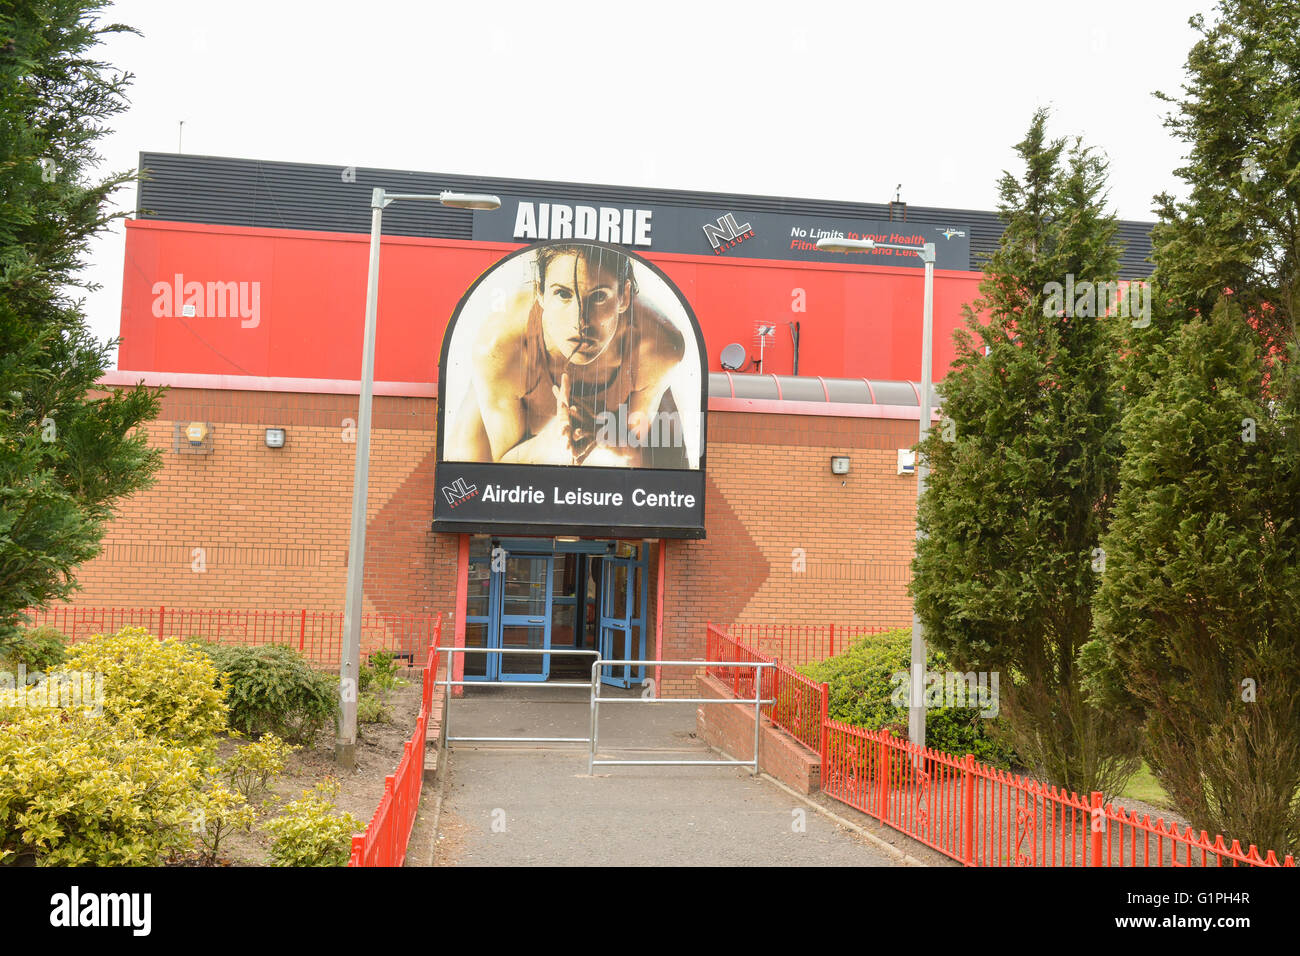 Airdrie Leisure Centre, operated by NL Leisure (North Lanarkshire), Scotland, UK - Stock Image